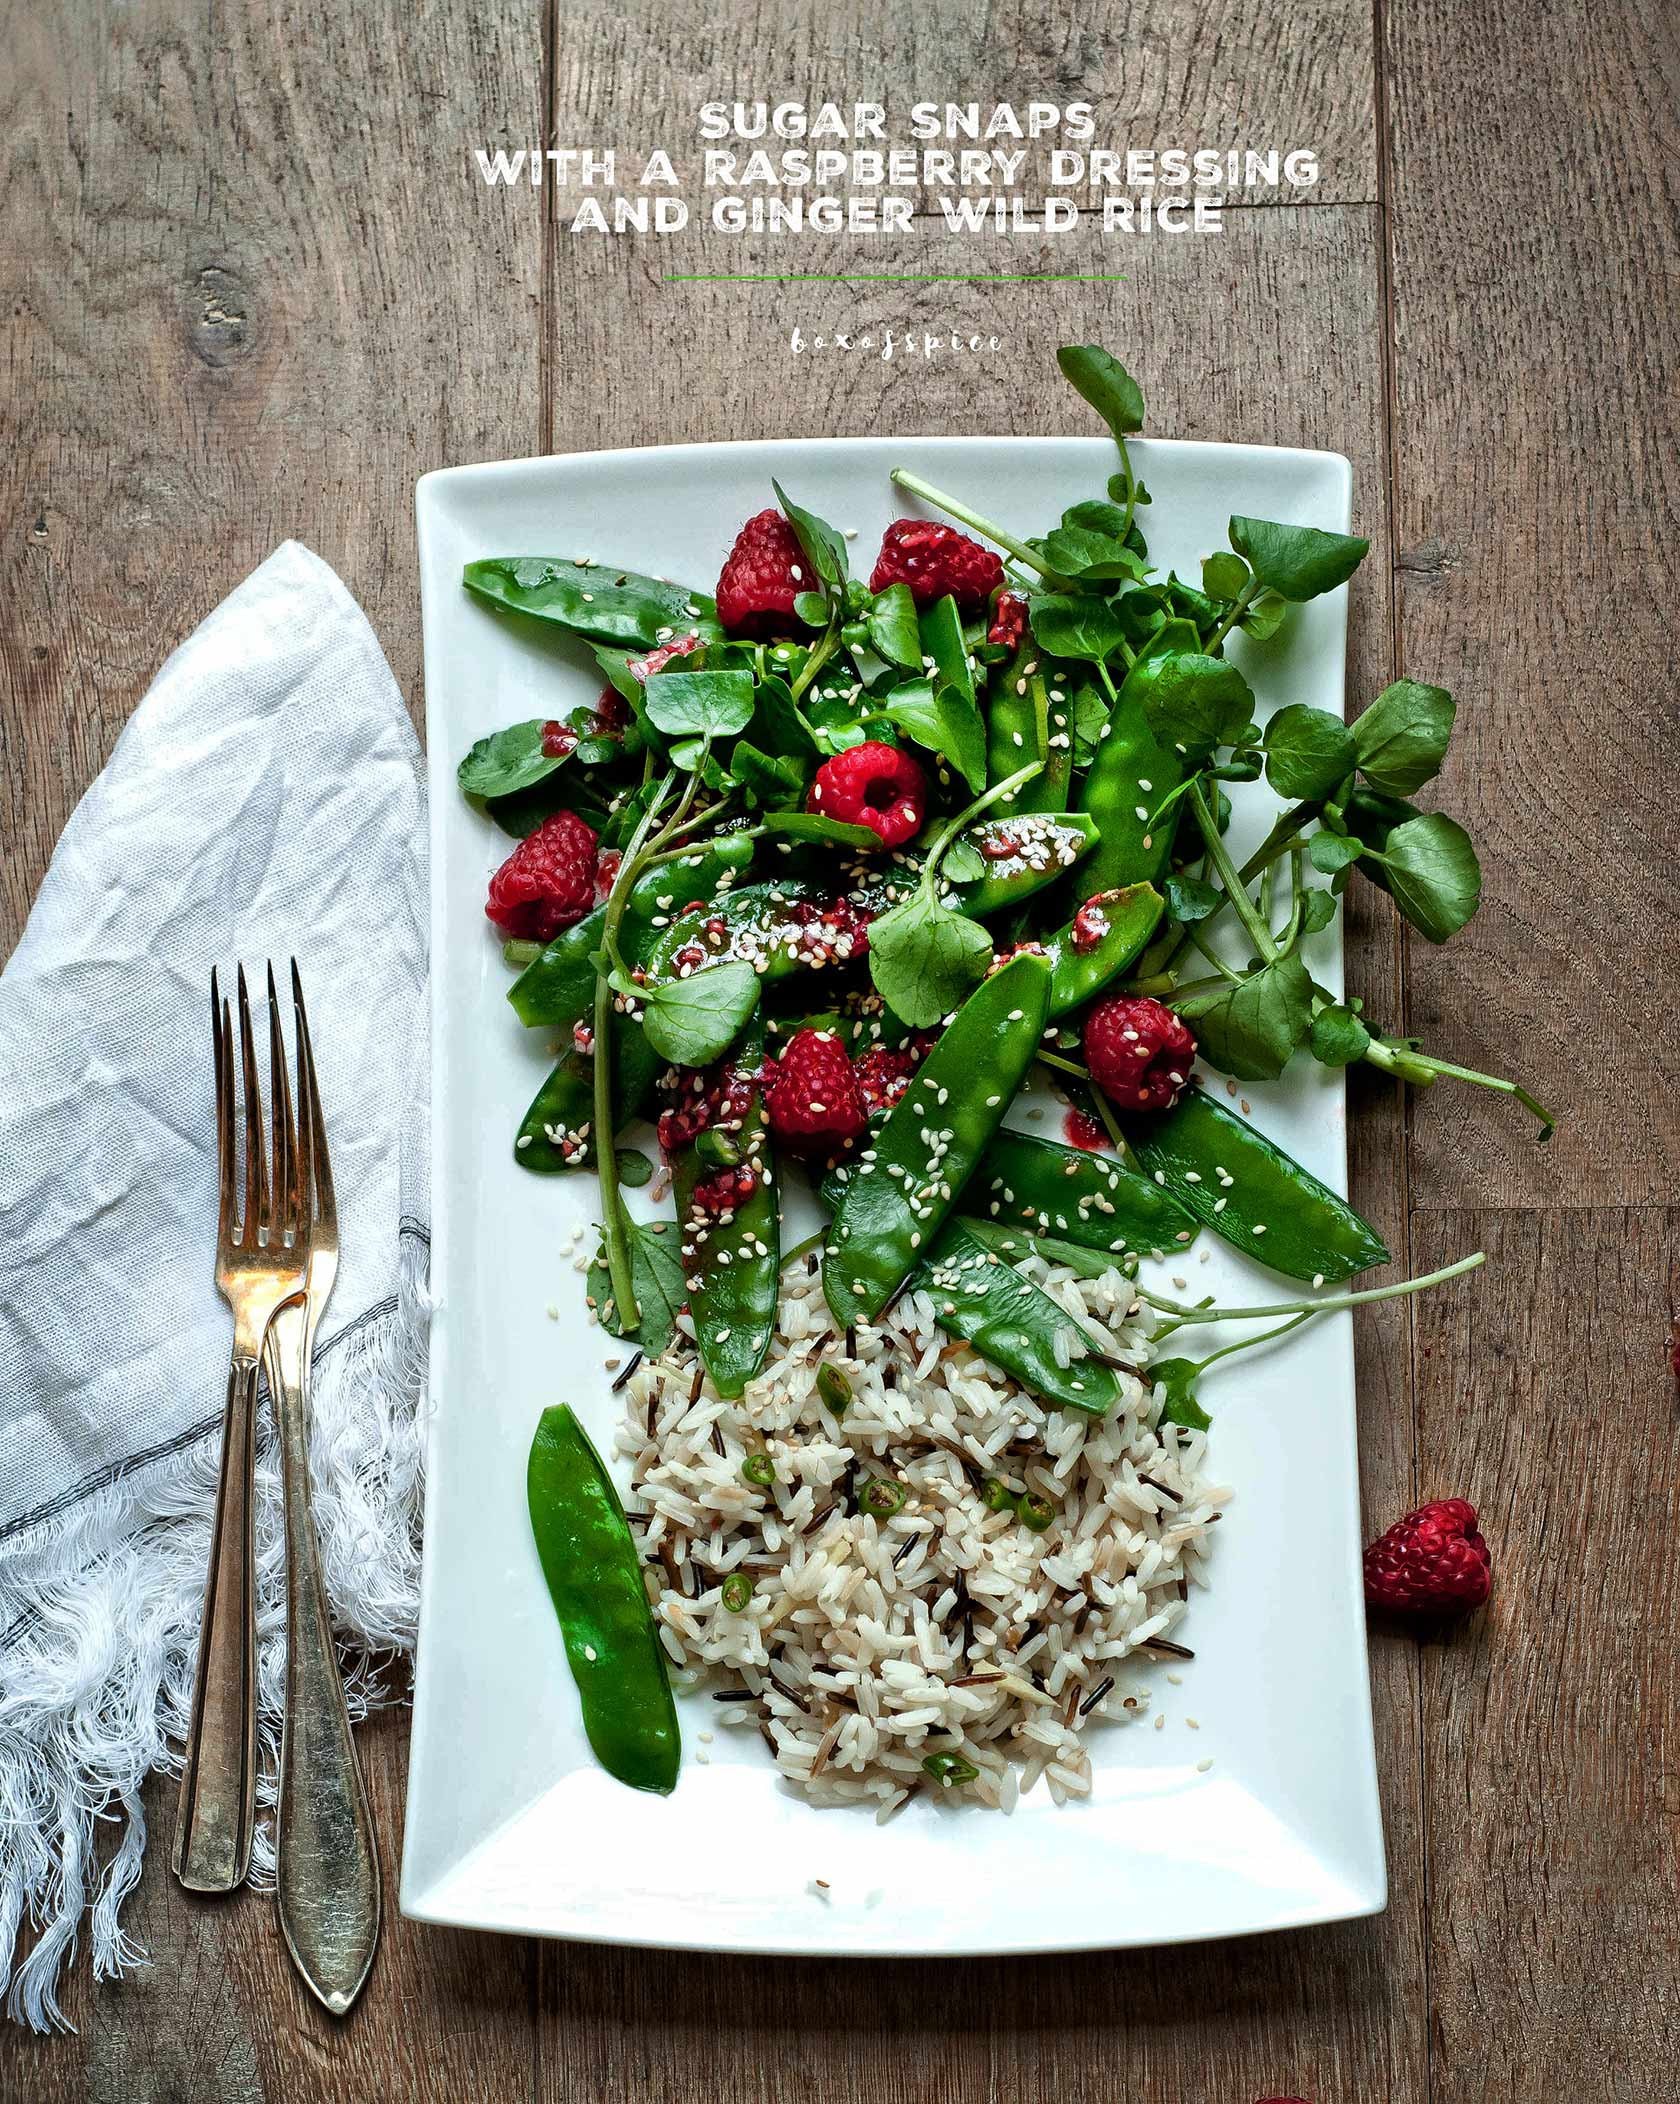 Wildcress and Sugar Snaps with A Raspberry Dressing and Ginger Wild Rice I Boxofspice